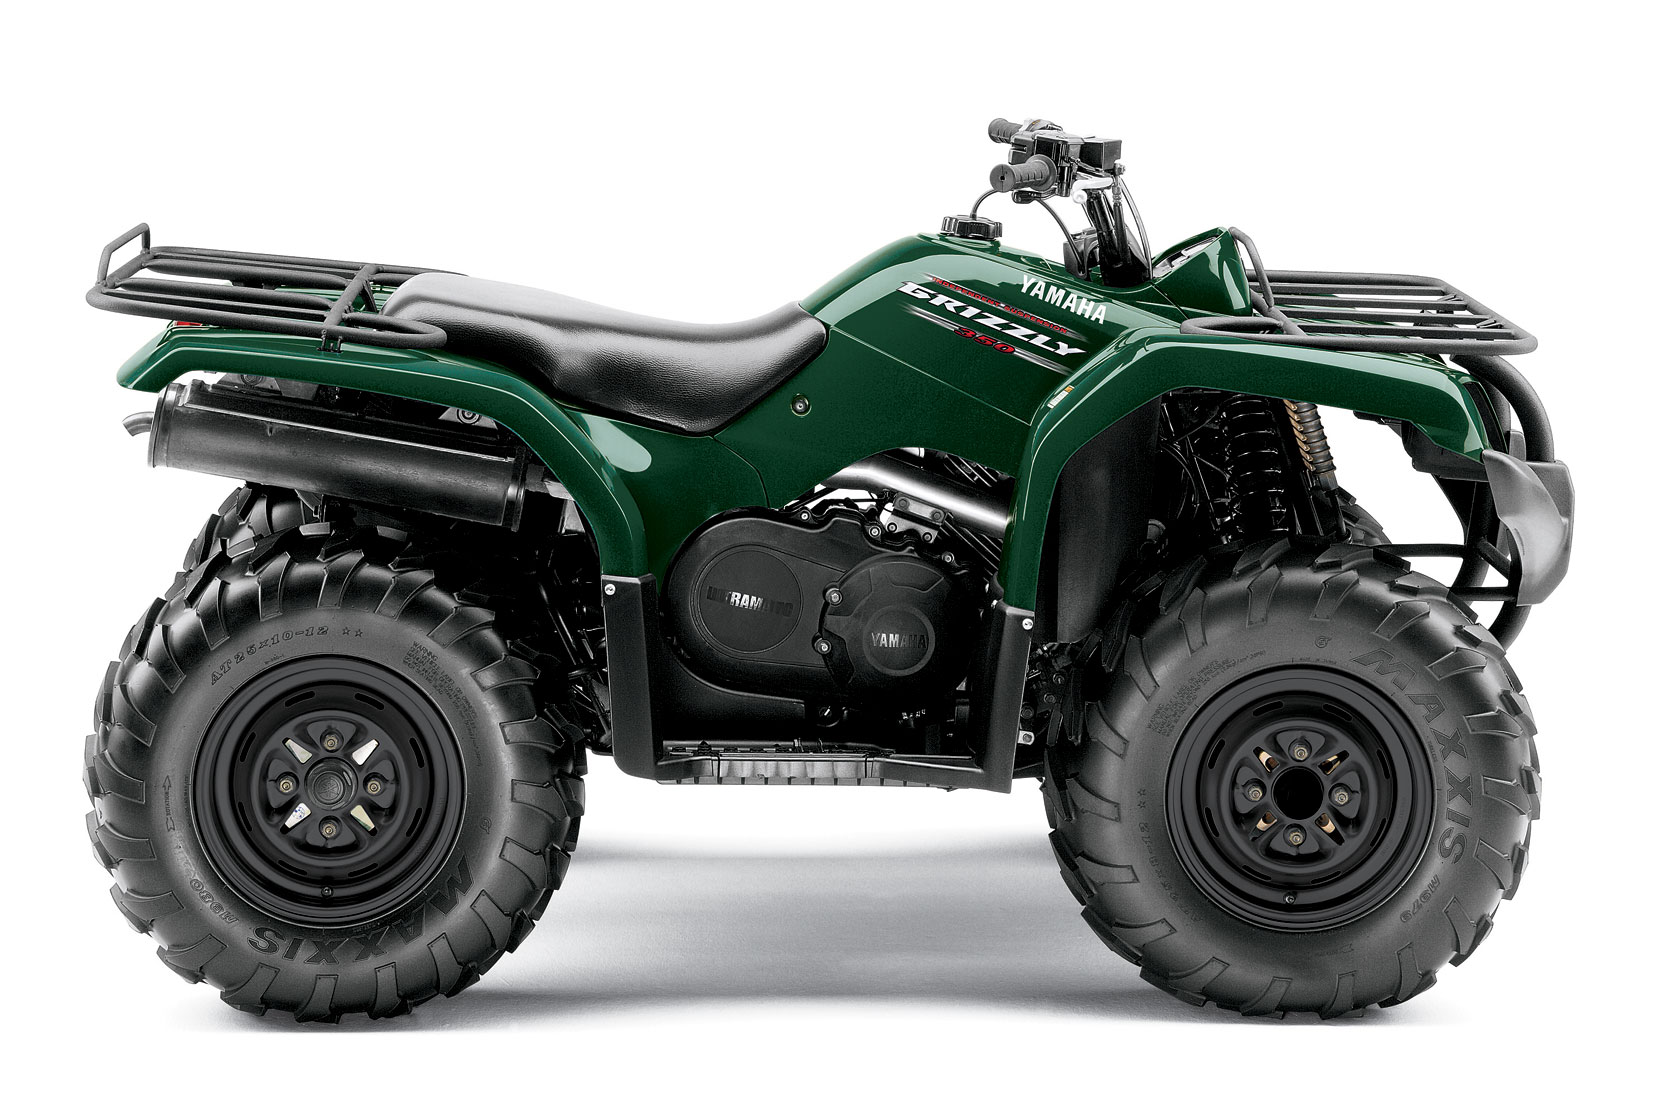 Yamaha grizzly 350 4x4 irs 2010 2011 autoevolution for Yamaha 350 grizzly